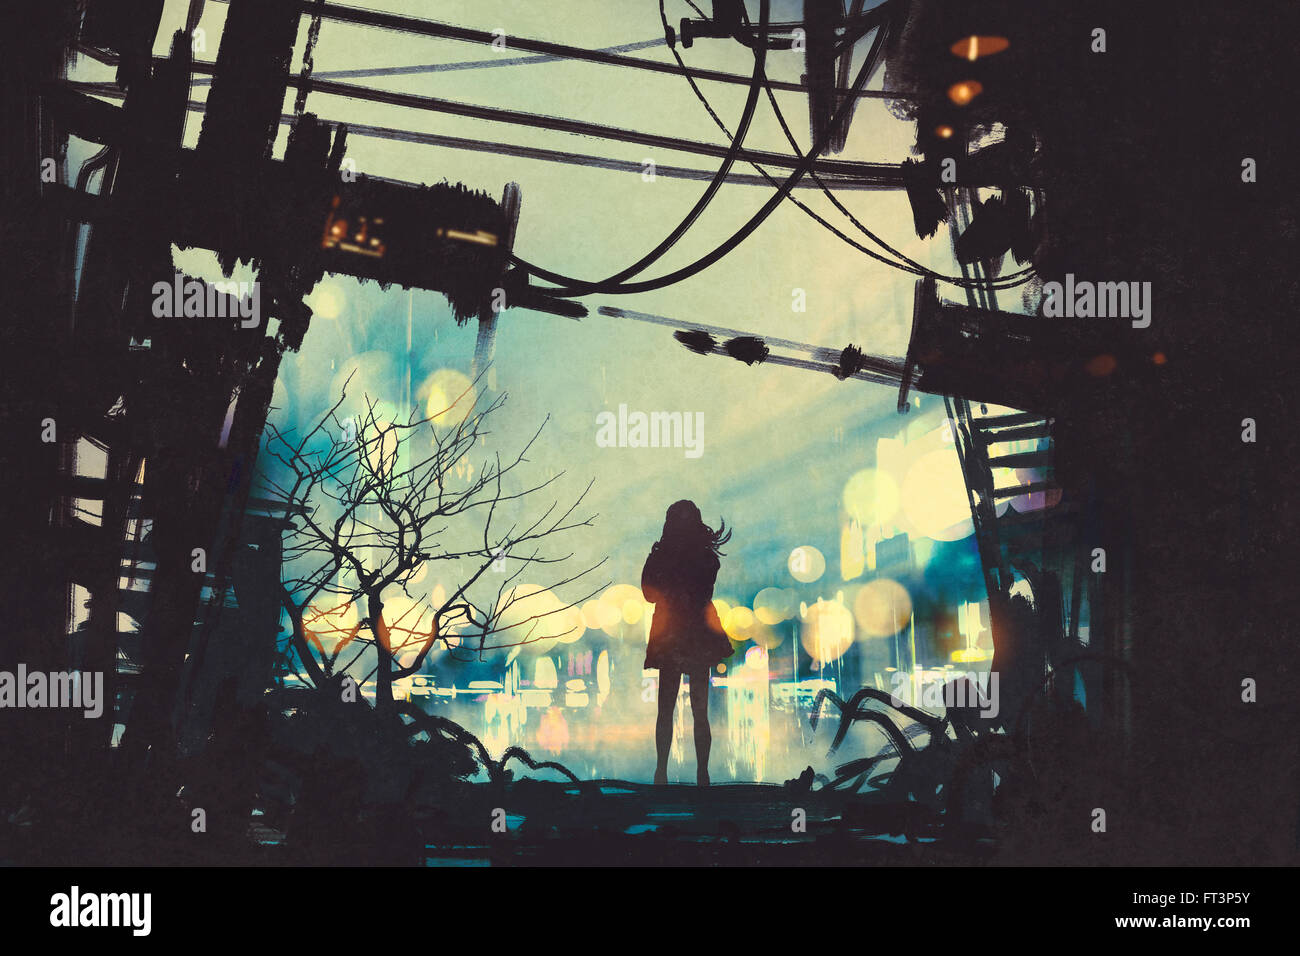 woman standing among old ruins looking outside,illustration painting - Stock Image